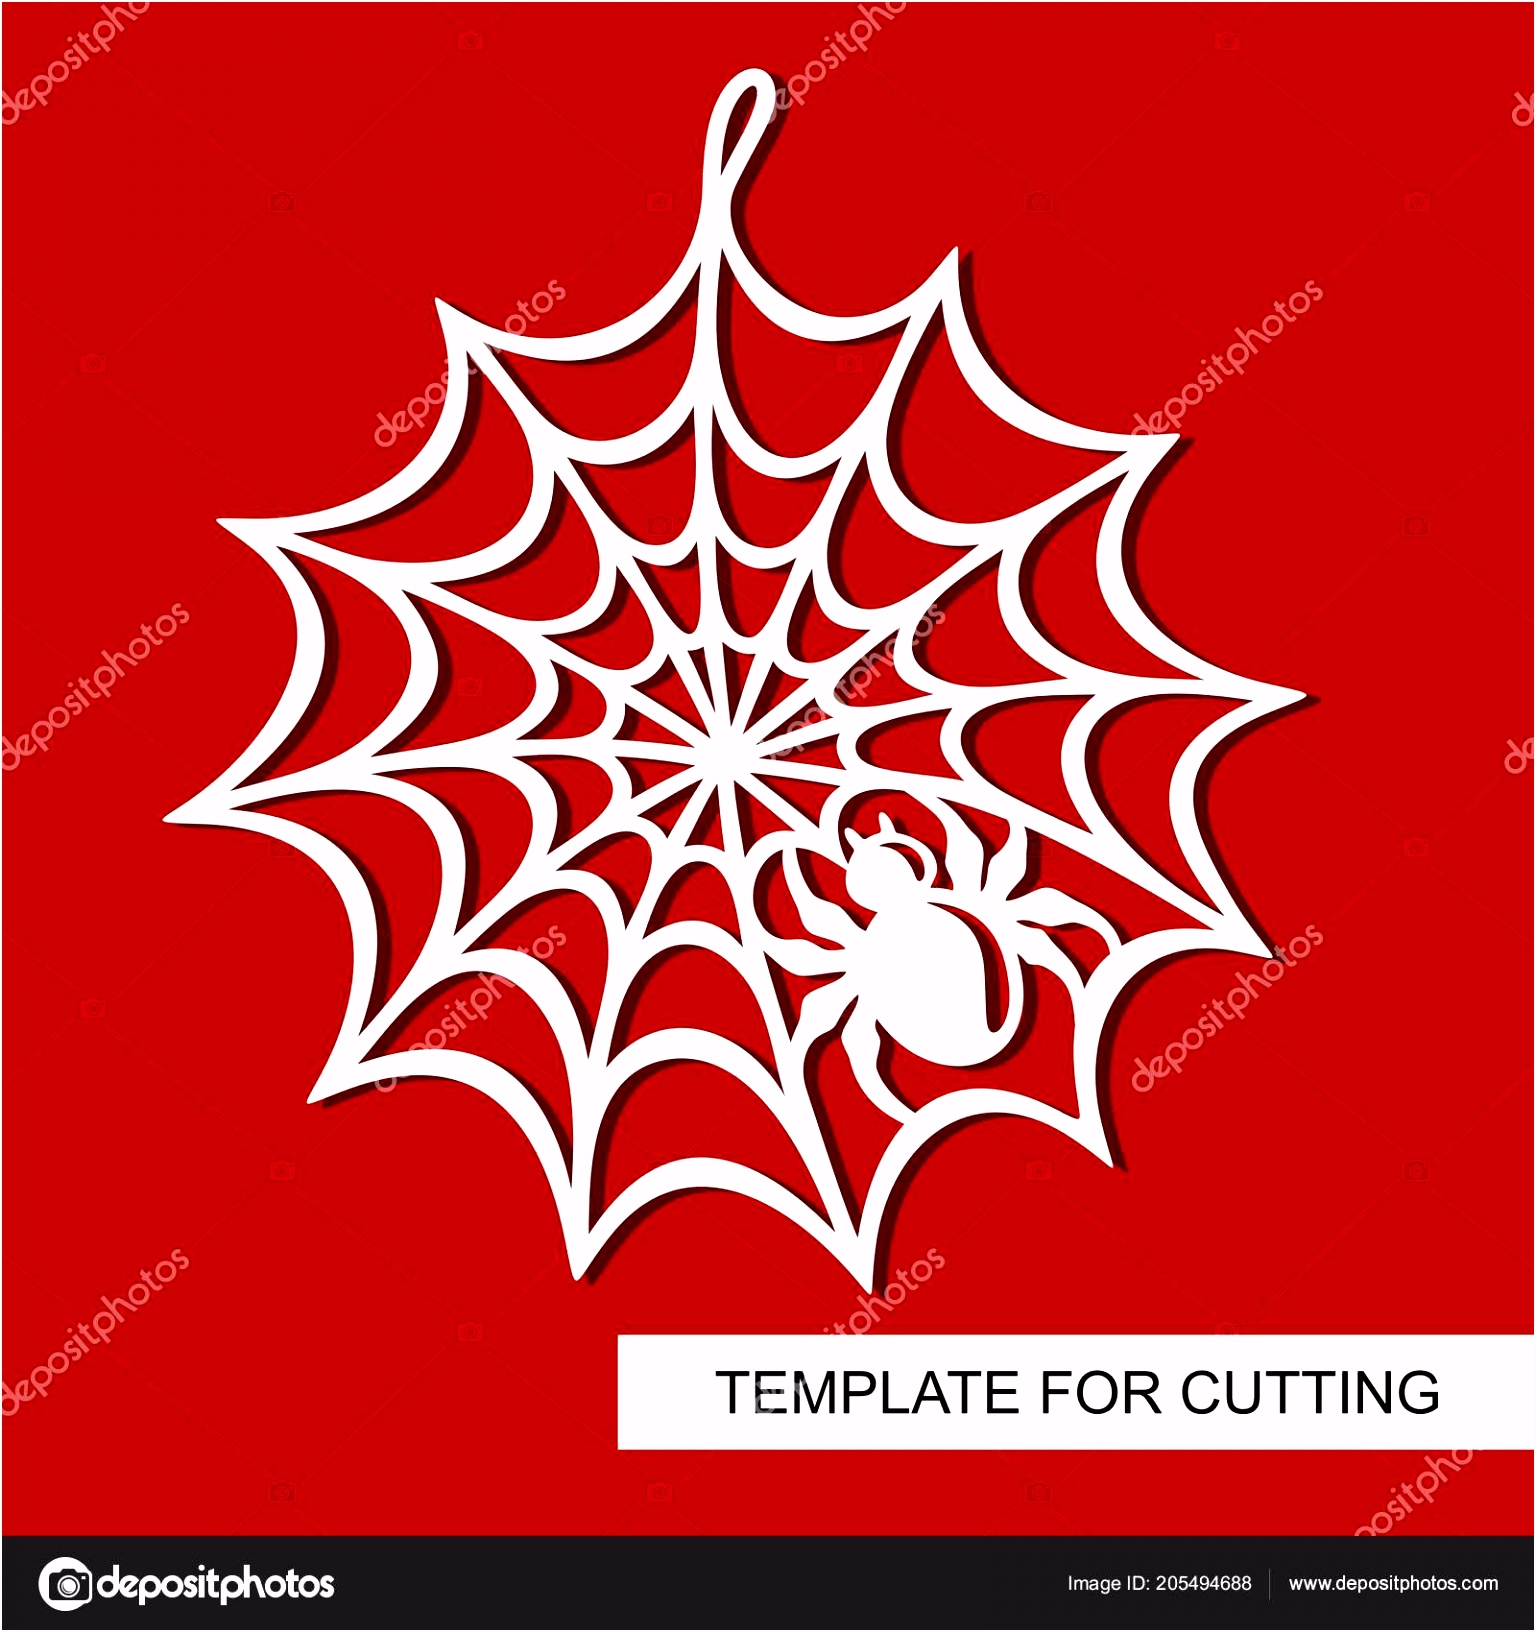 Decoration Halloween Spiderweb Template Laser Cutting Wood Carving